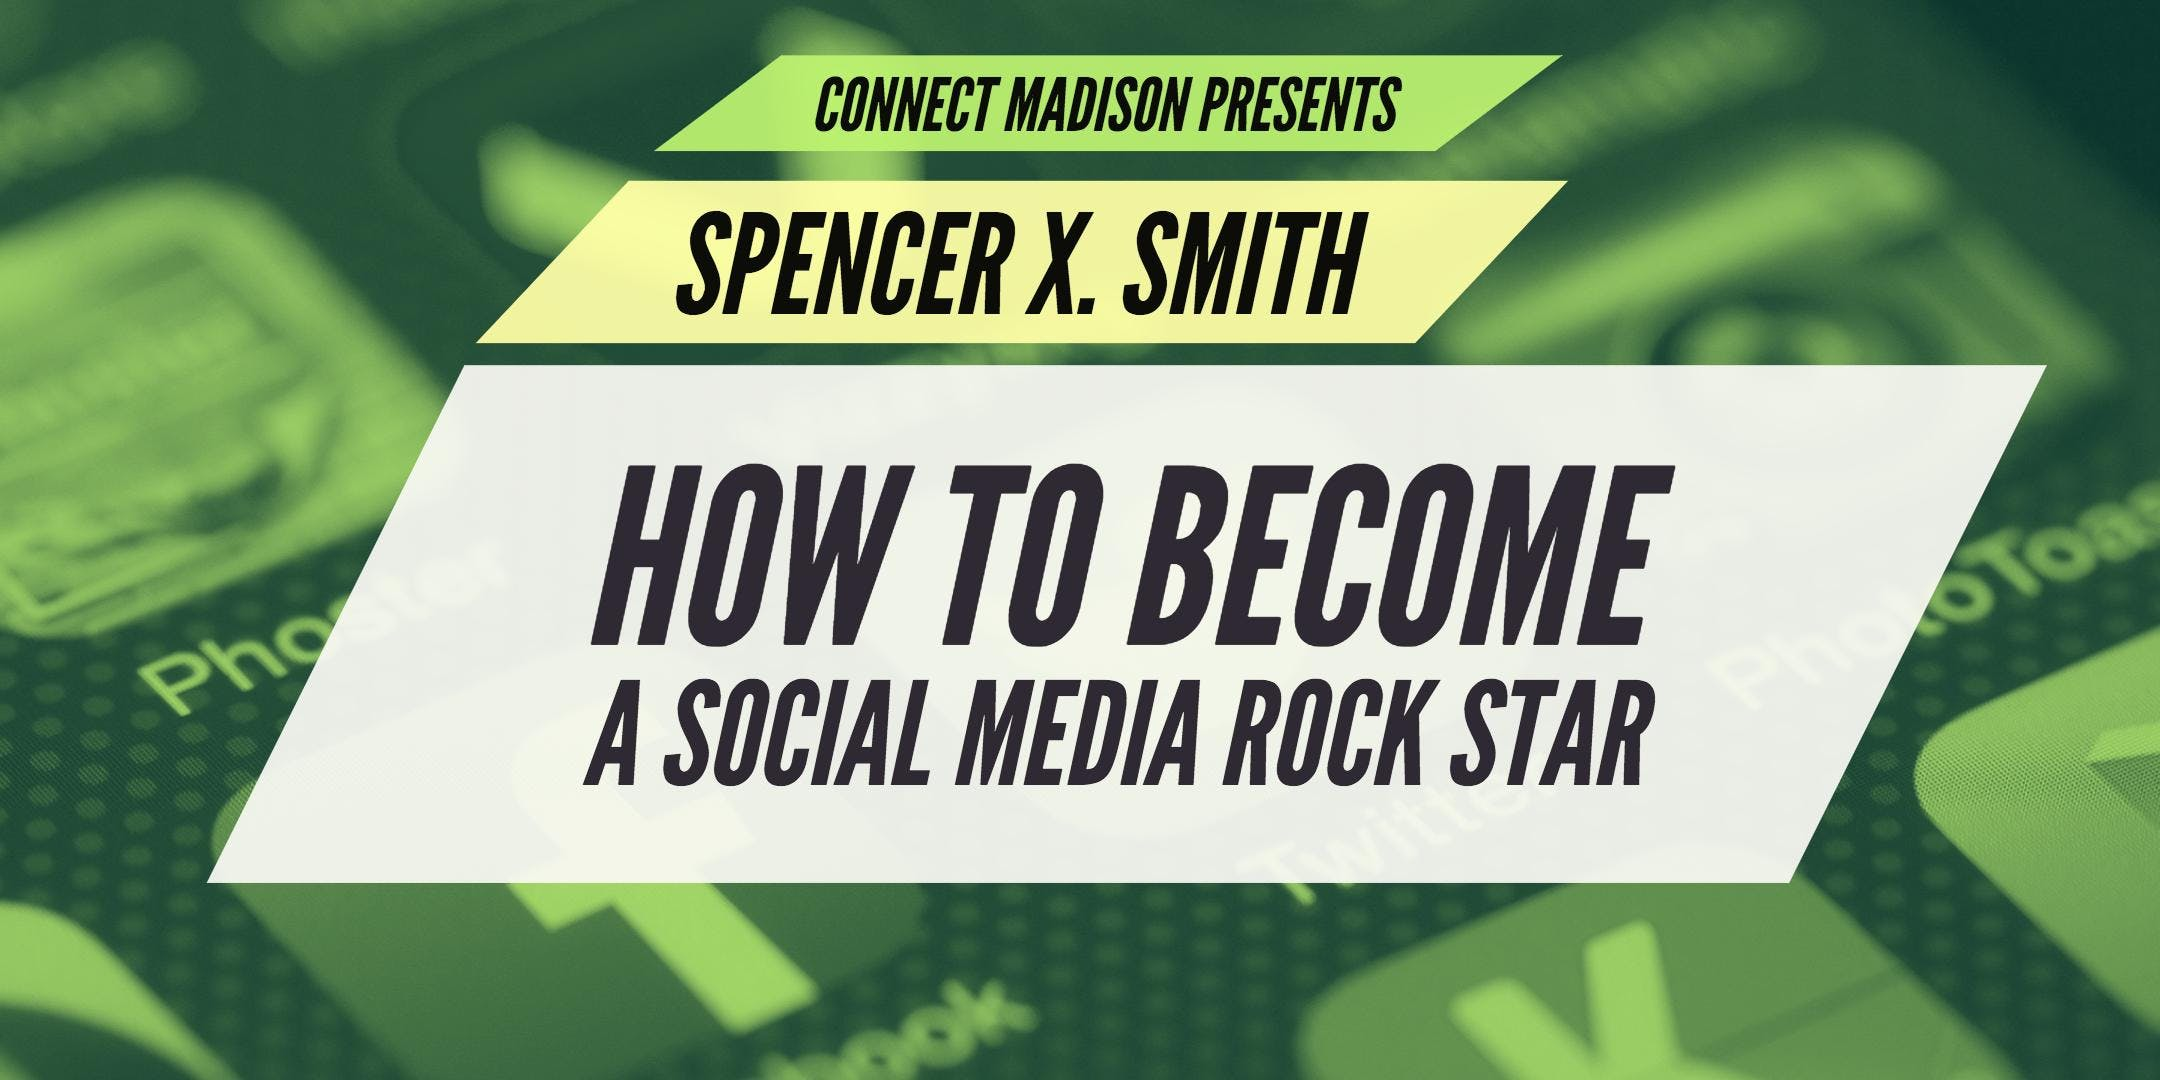 Connect Madison  Spencer X. Smith How To Become A Social Media Rockstar